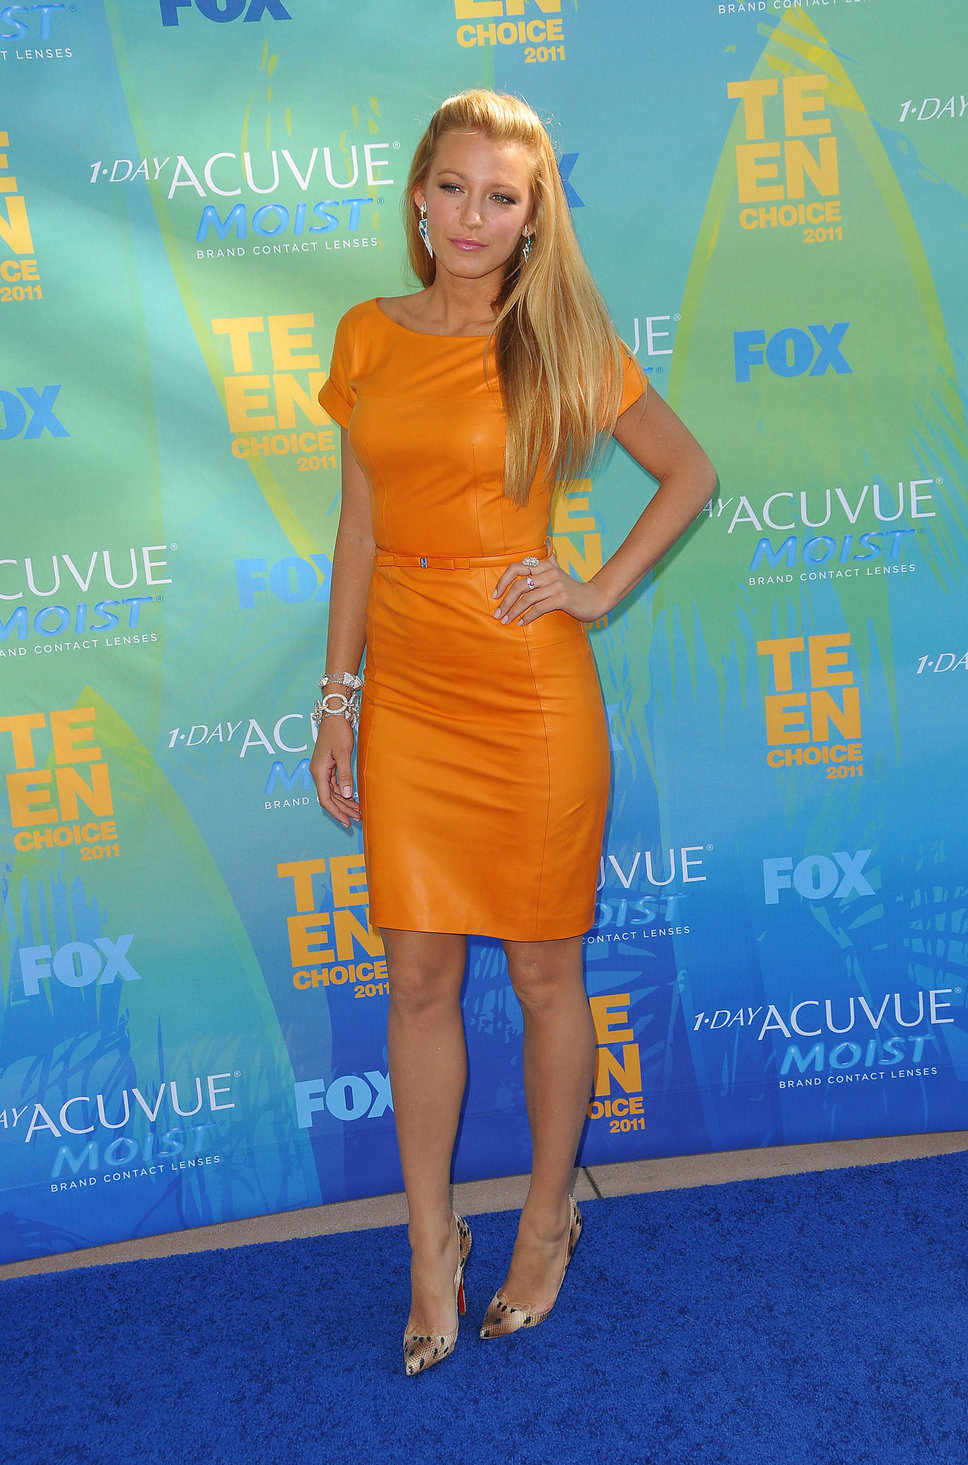 Blake Lively in orange leather dress